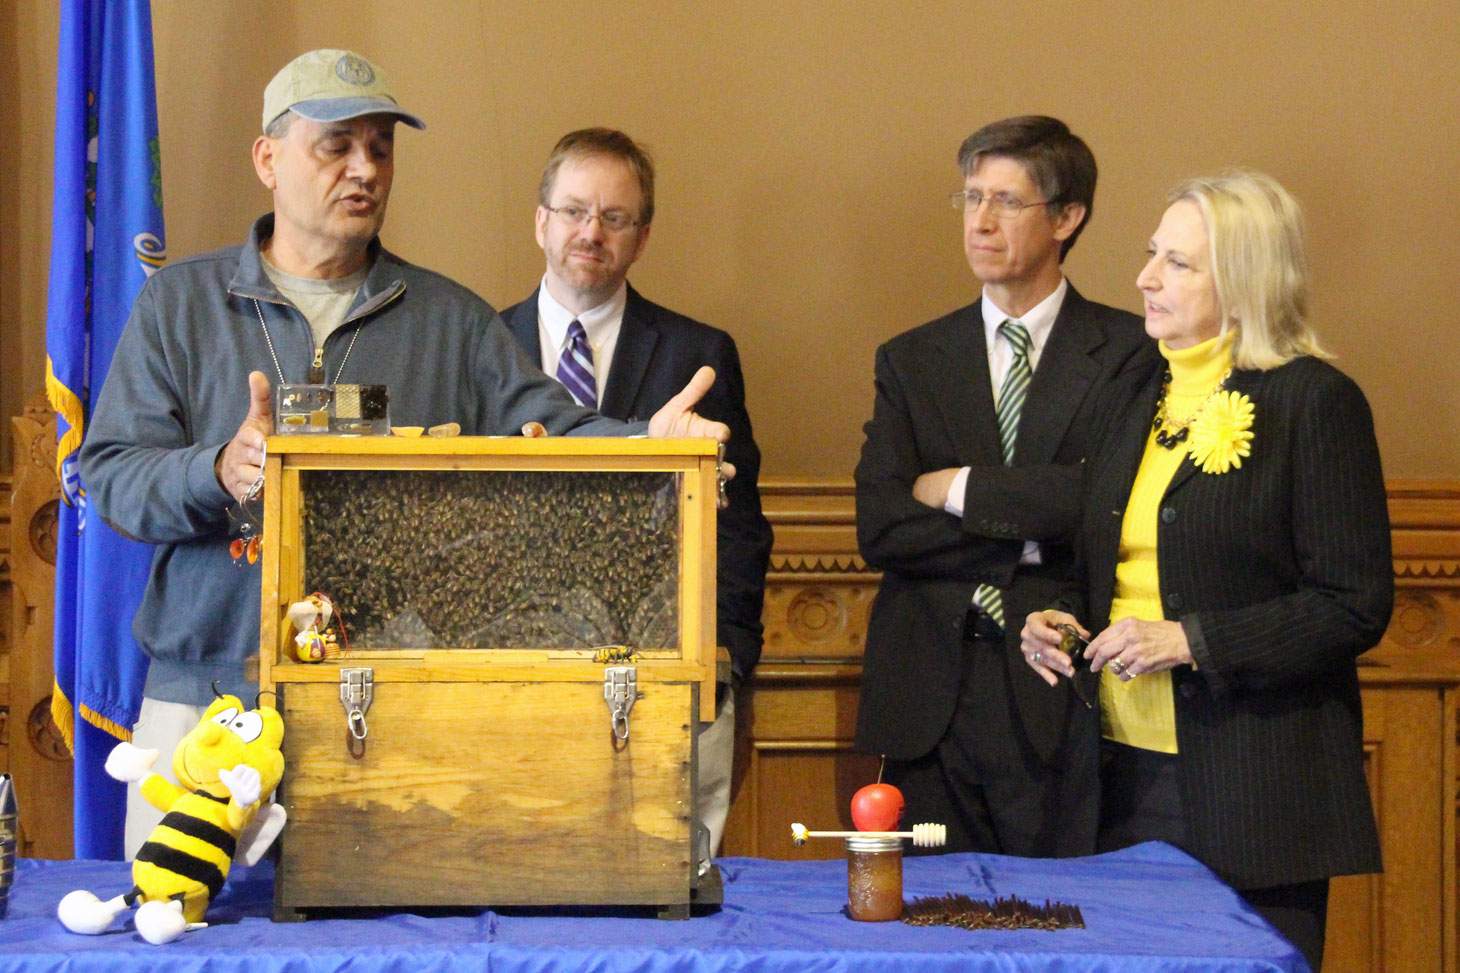 Rep. Demicco Legislation to Protect Honeybees